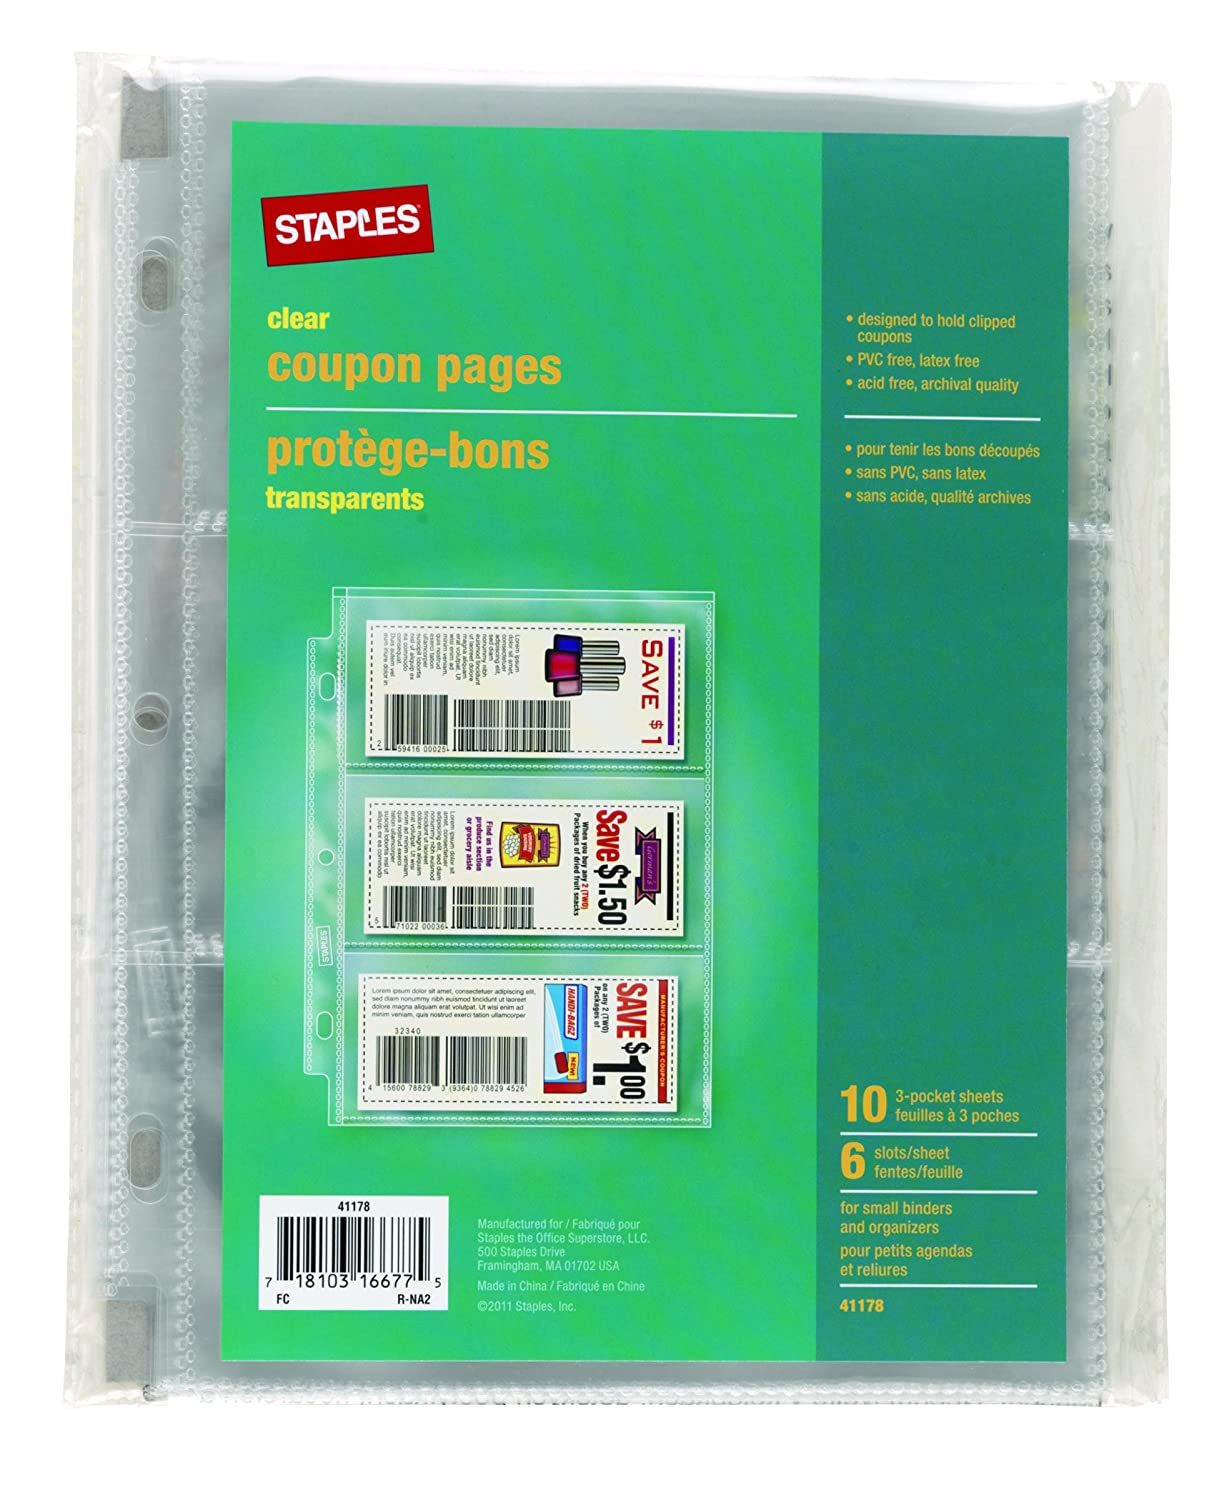 Staples color printing coupon code - Amazon Com Staples 3 Pocket Heavy Duty Coupon Pages Clear 5 X 8 10 Pack 41178 Kitchen Dining